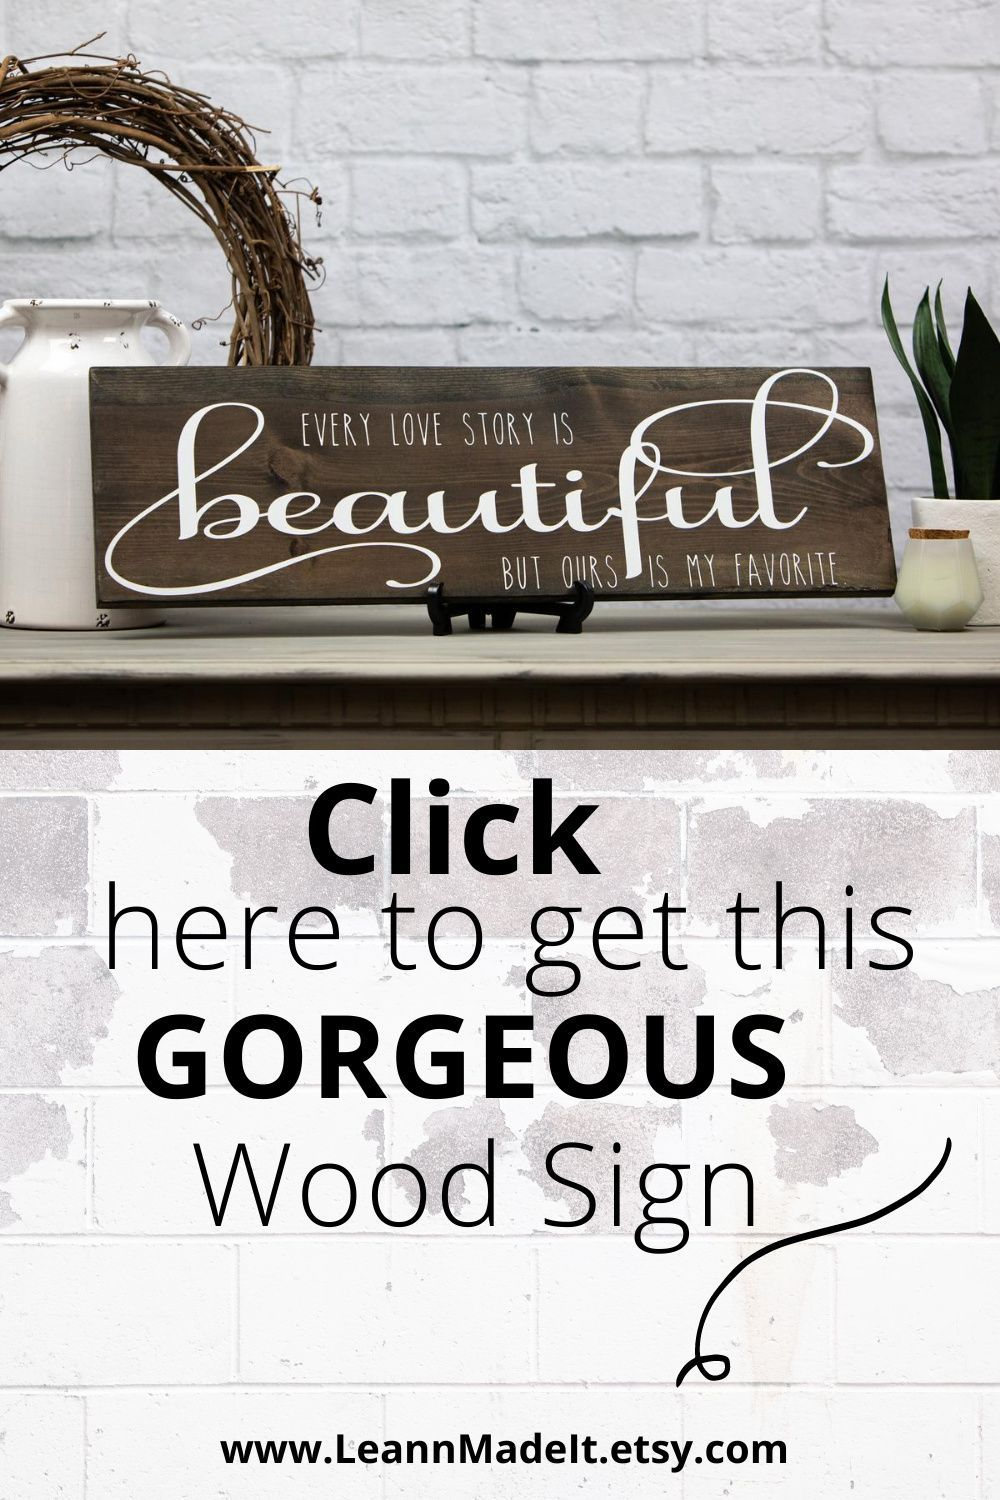 Every love story is beautiful sign | Farmhouse decor living room. Browse our unique collection of Farmhouse style wood signs! #Everylovestoryisbeautifulsign #farmhousedecorlivingroom #entrywaydecor #farmhousesigns #signswithquotes